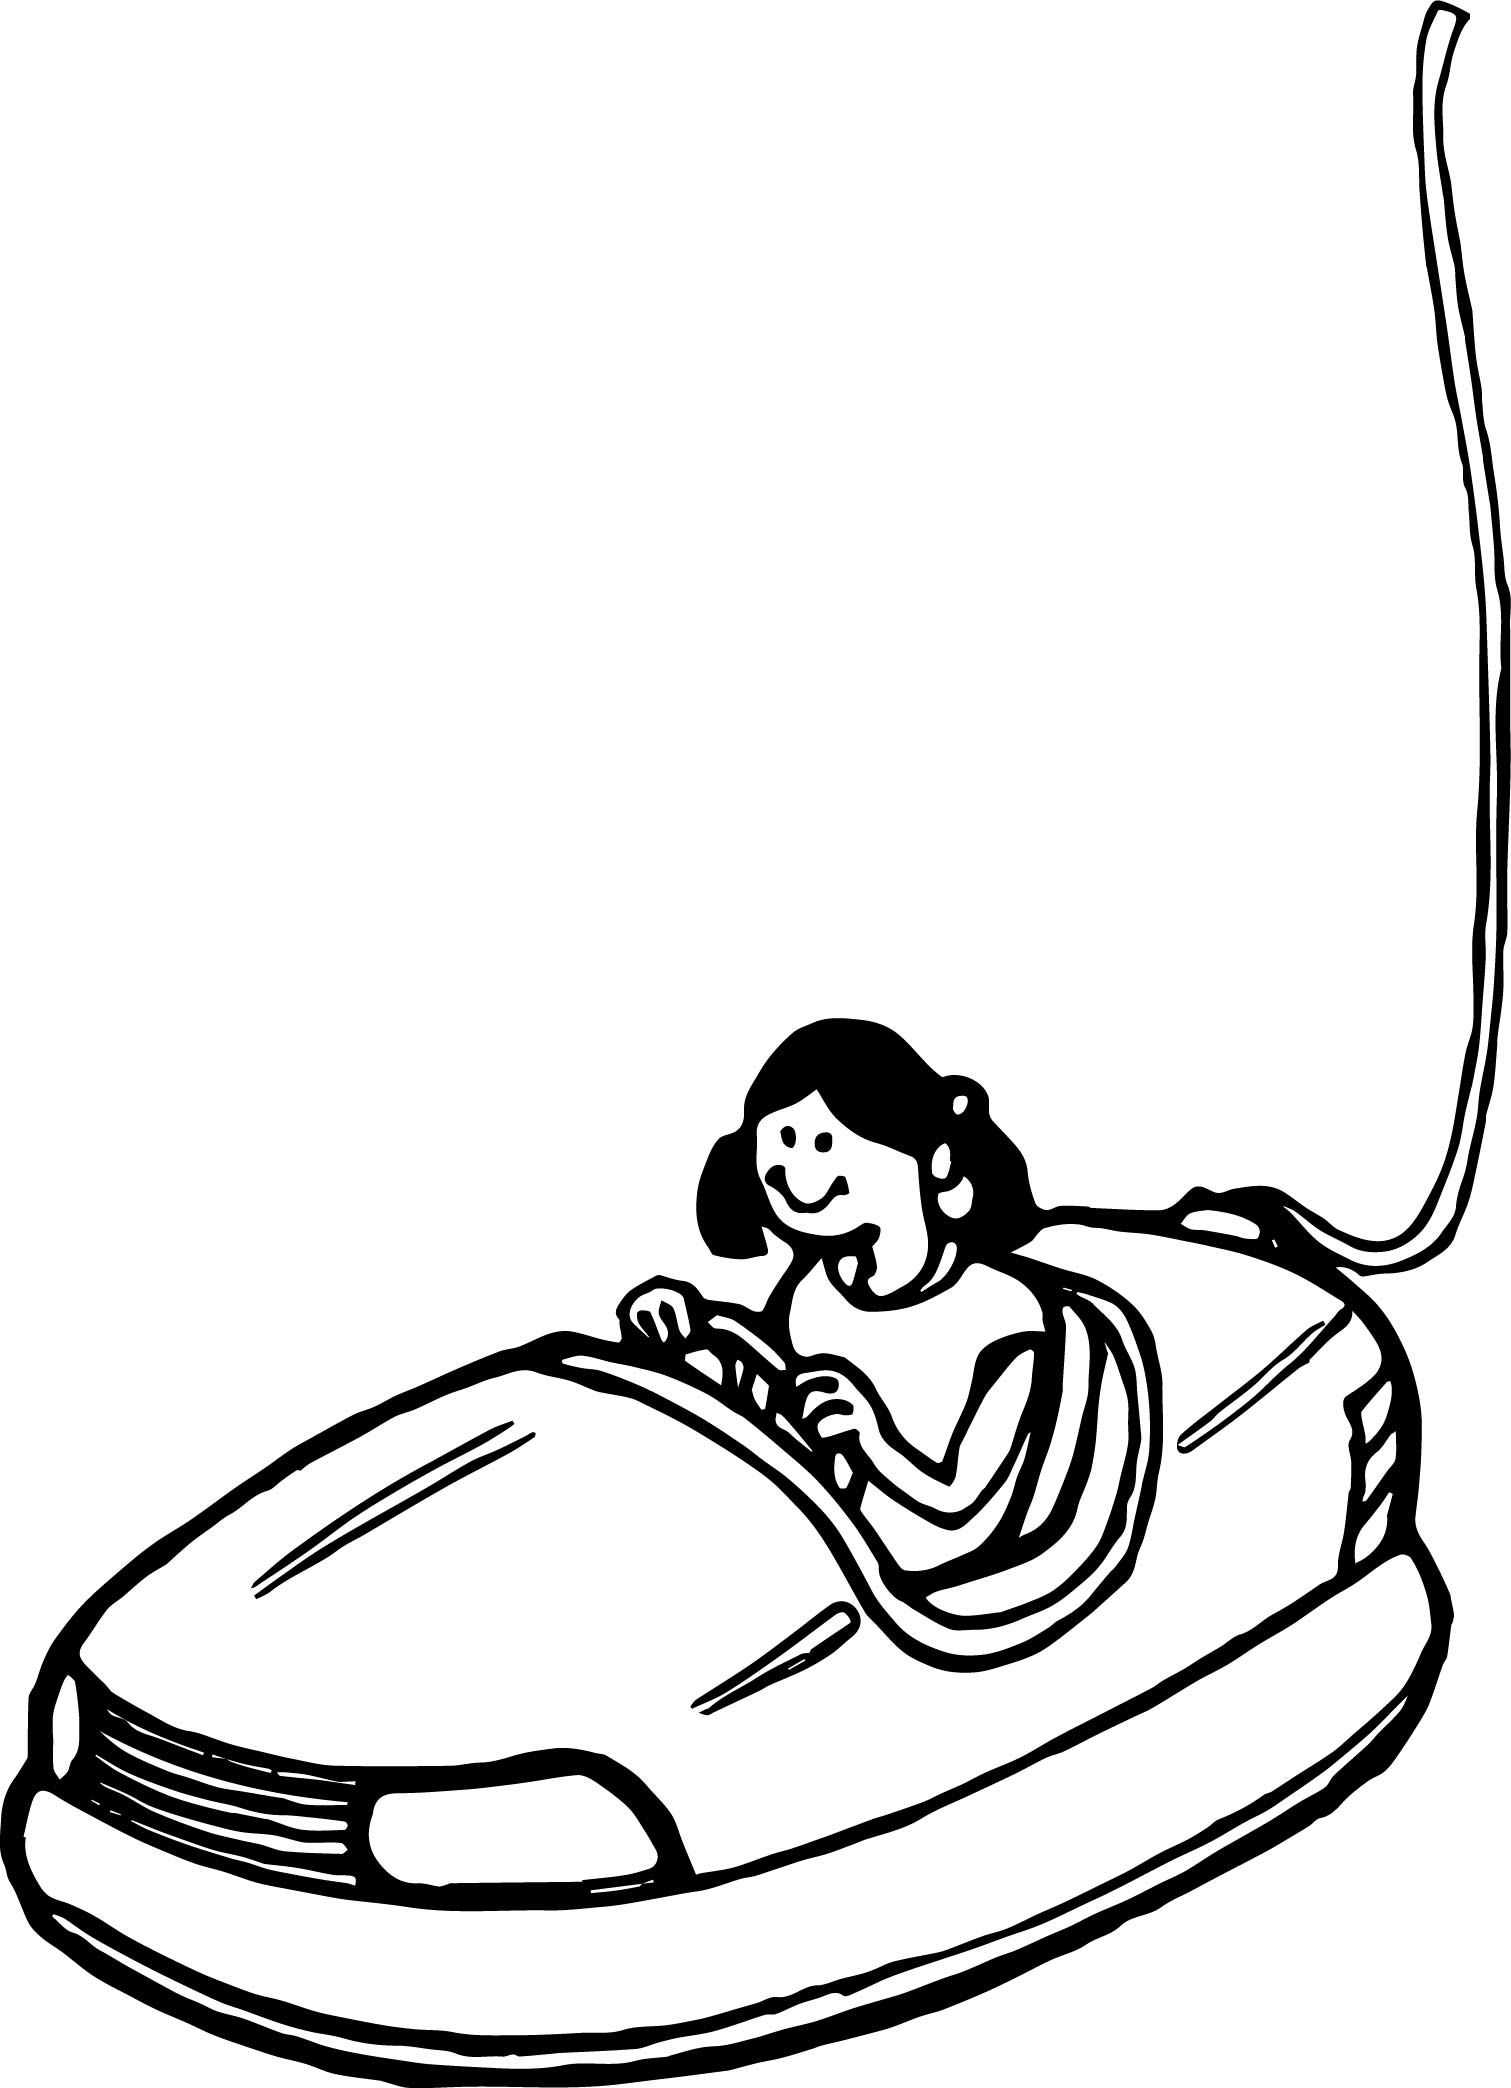 Batteries Electric Car Drawings Sketch Coloring Page